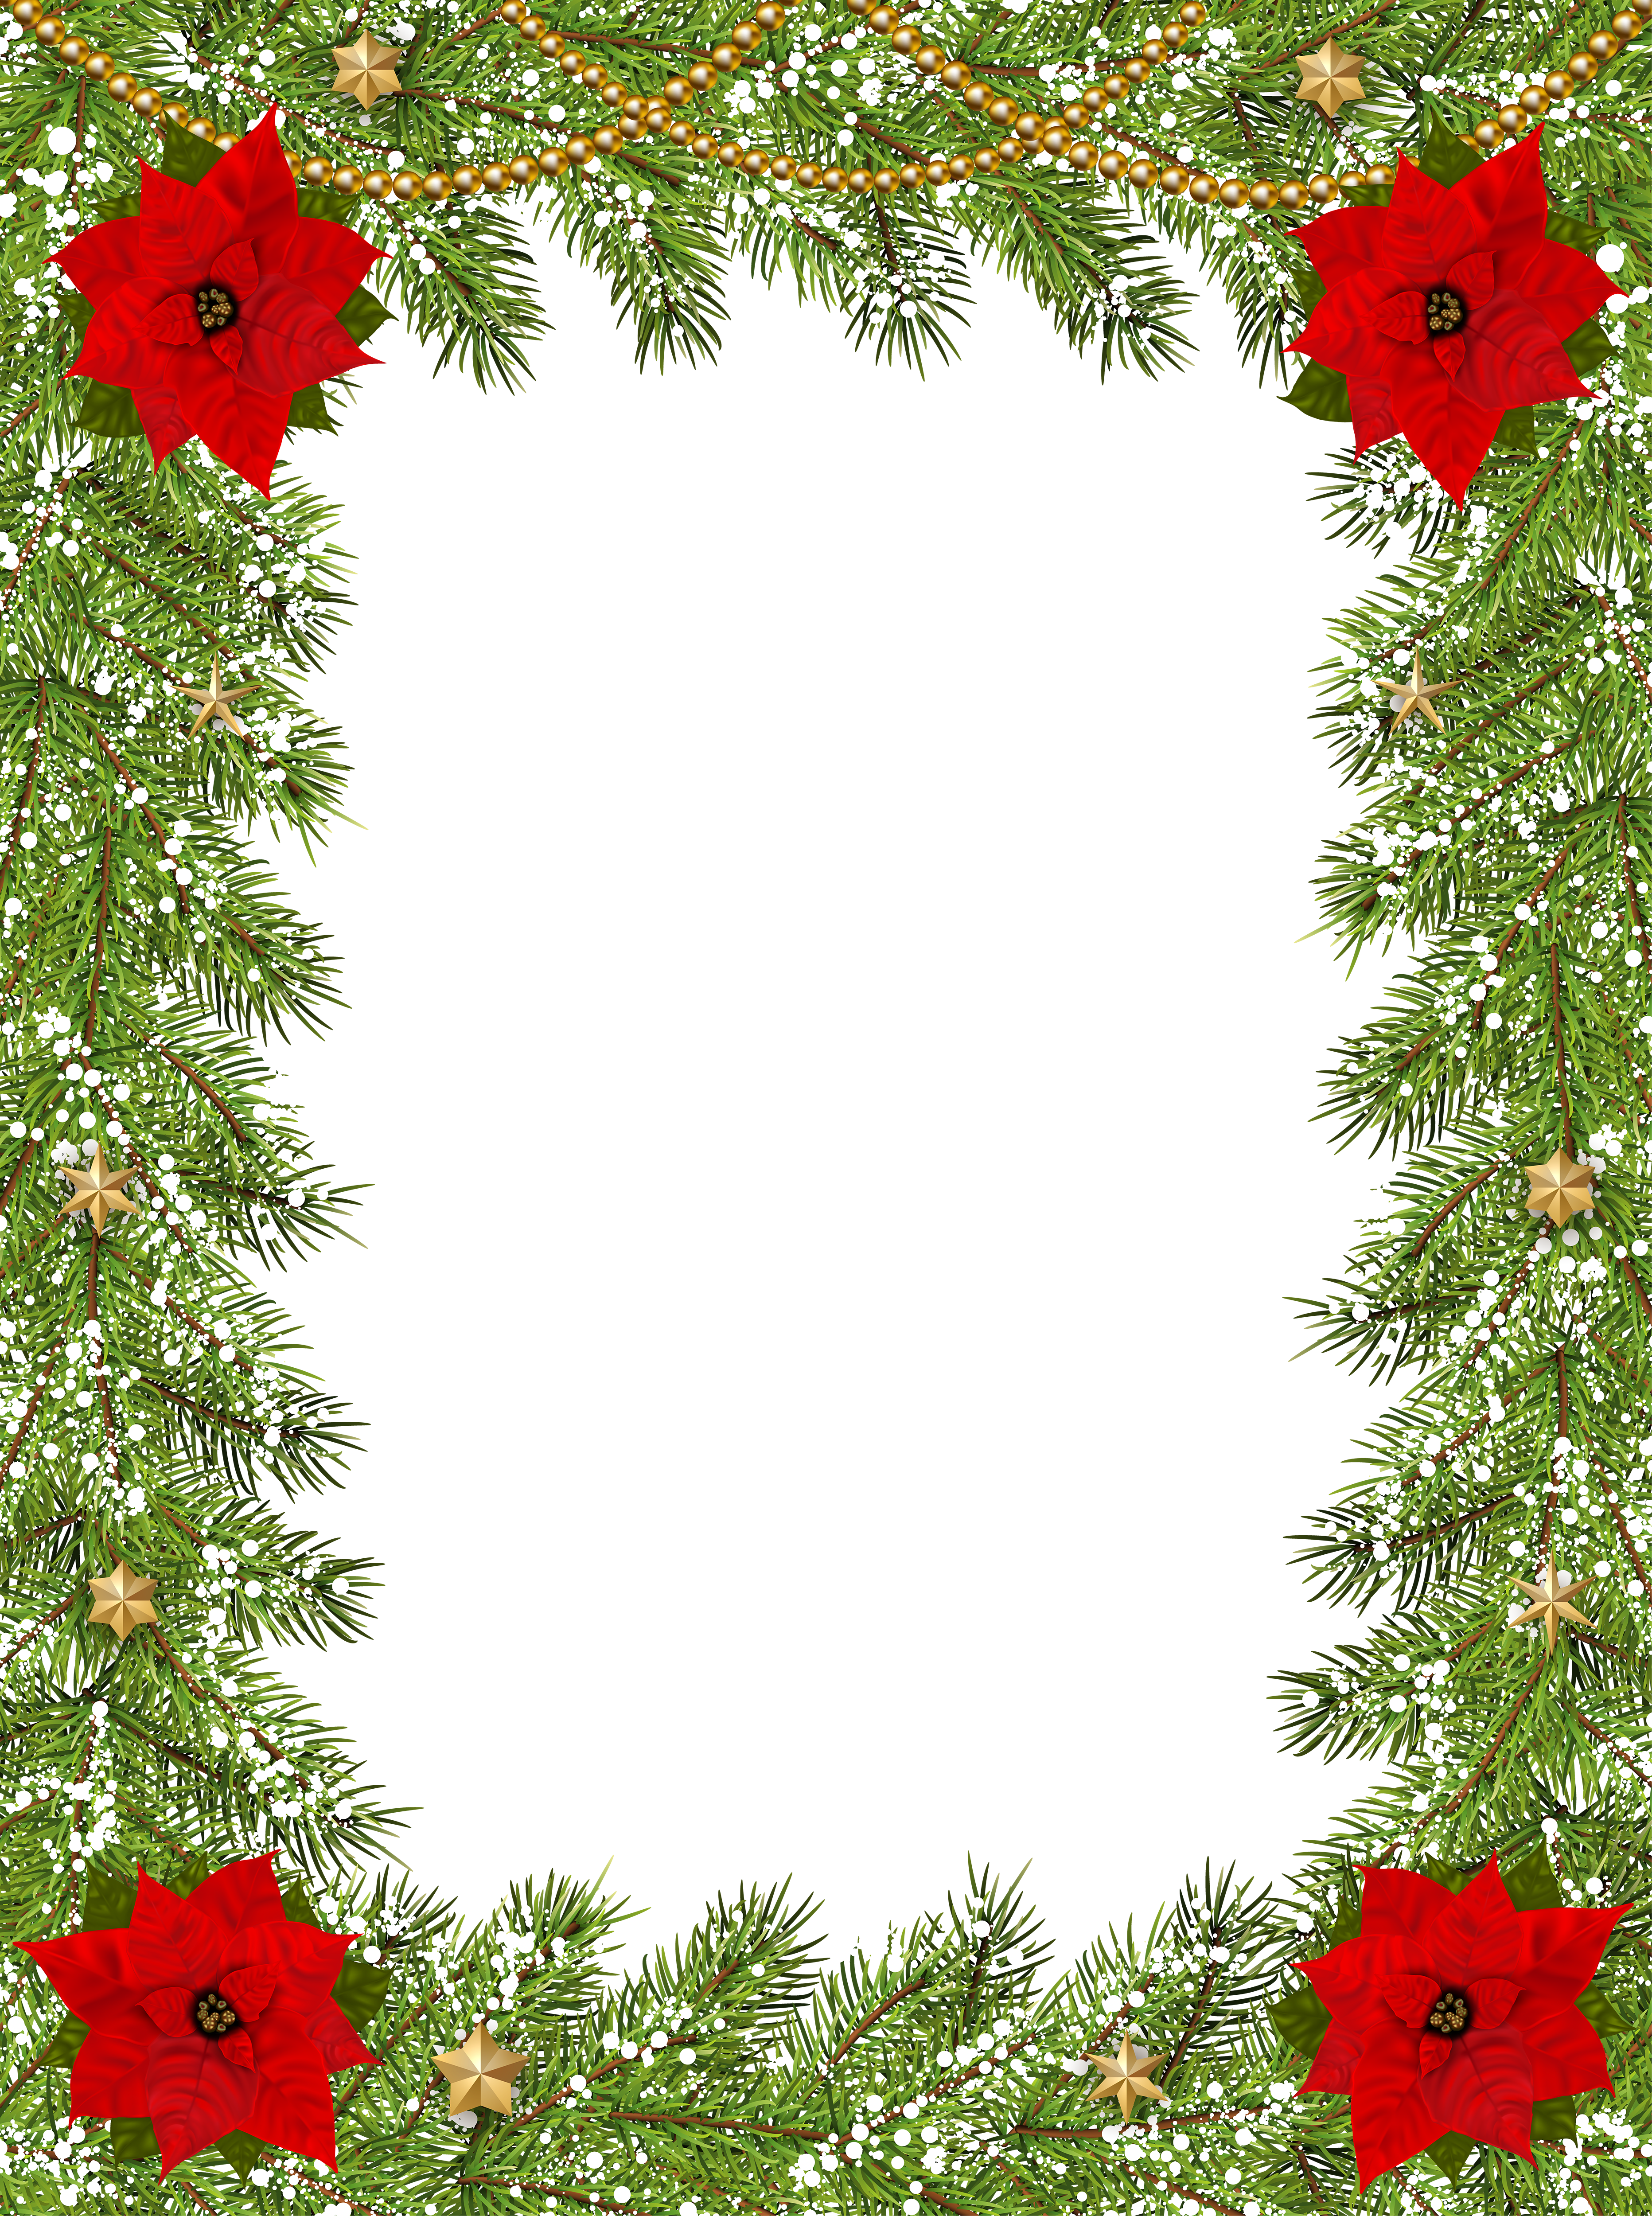 21+ Christmas border clipart free transparent ideas in 2021